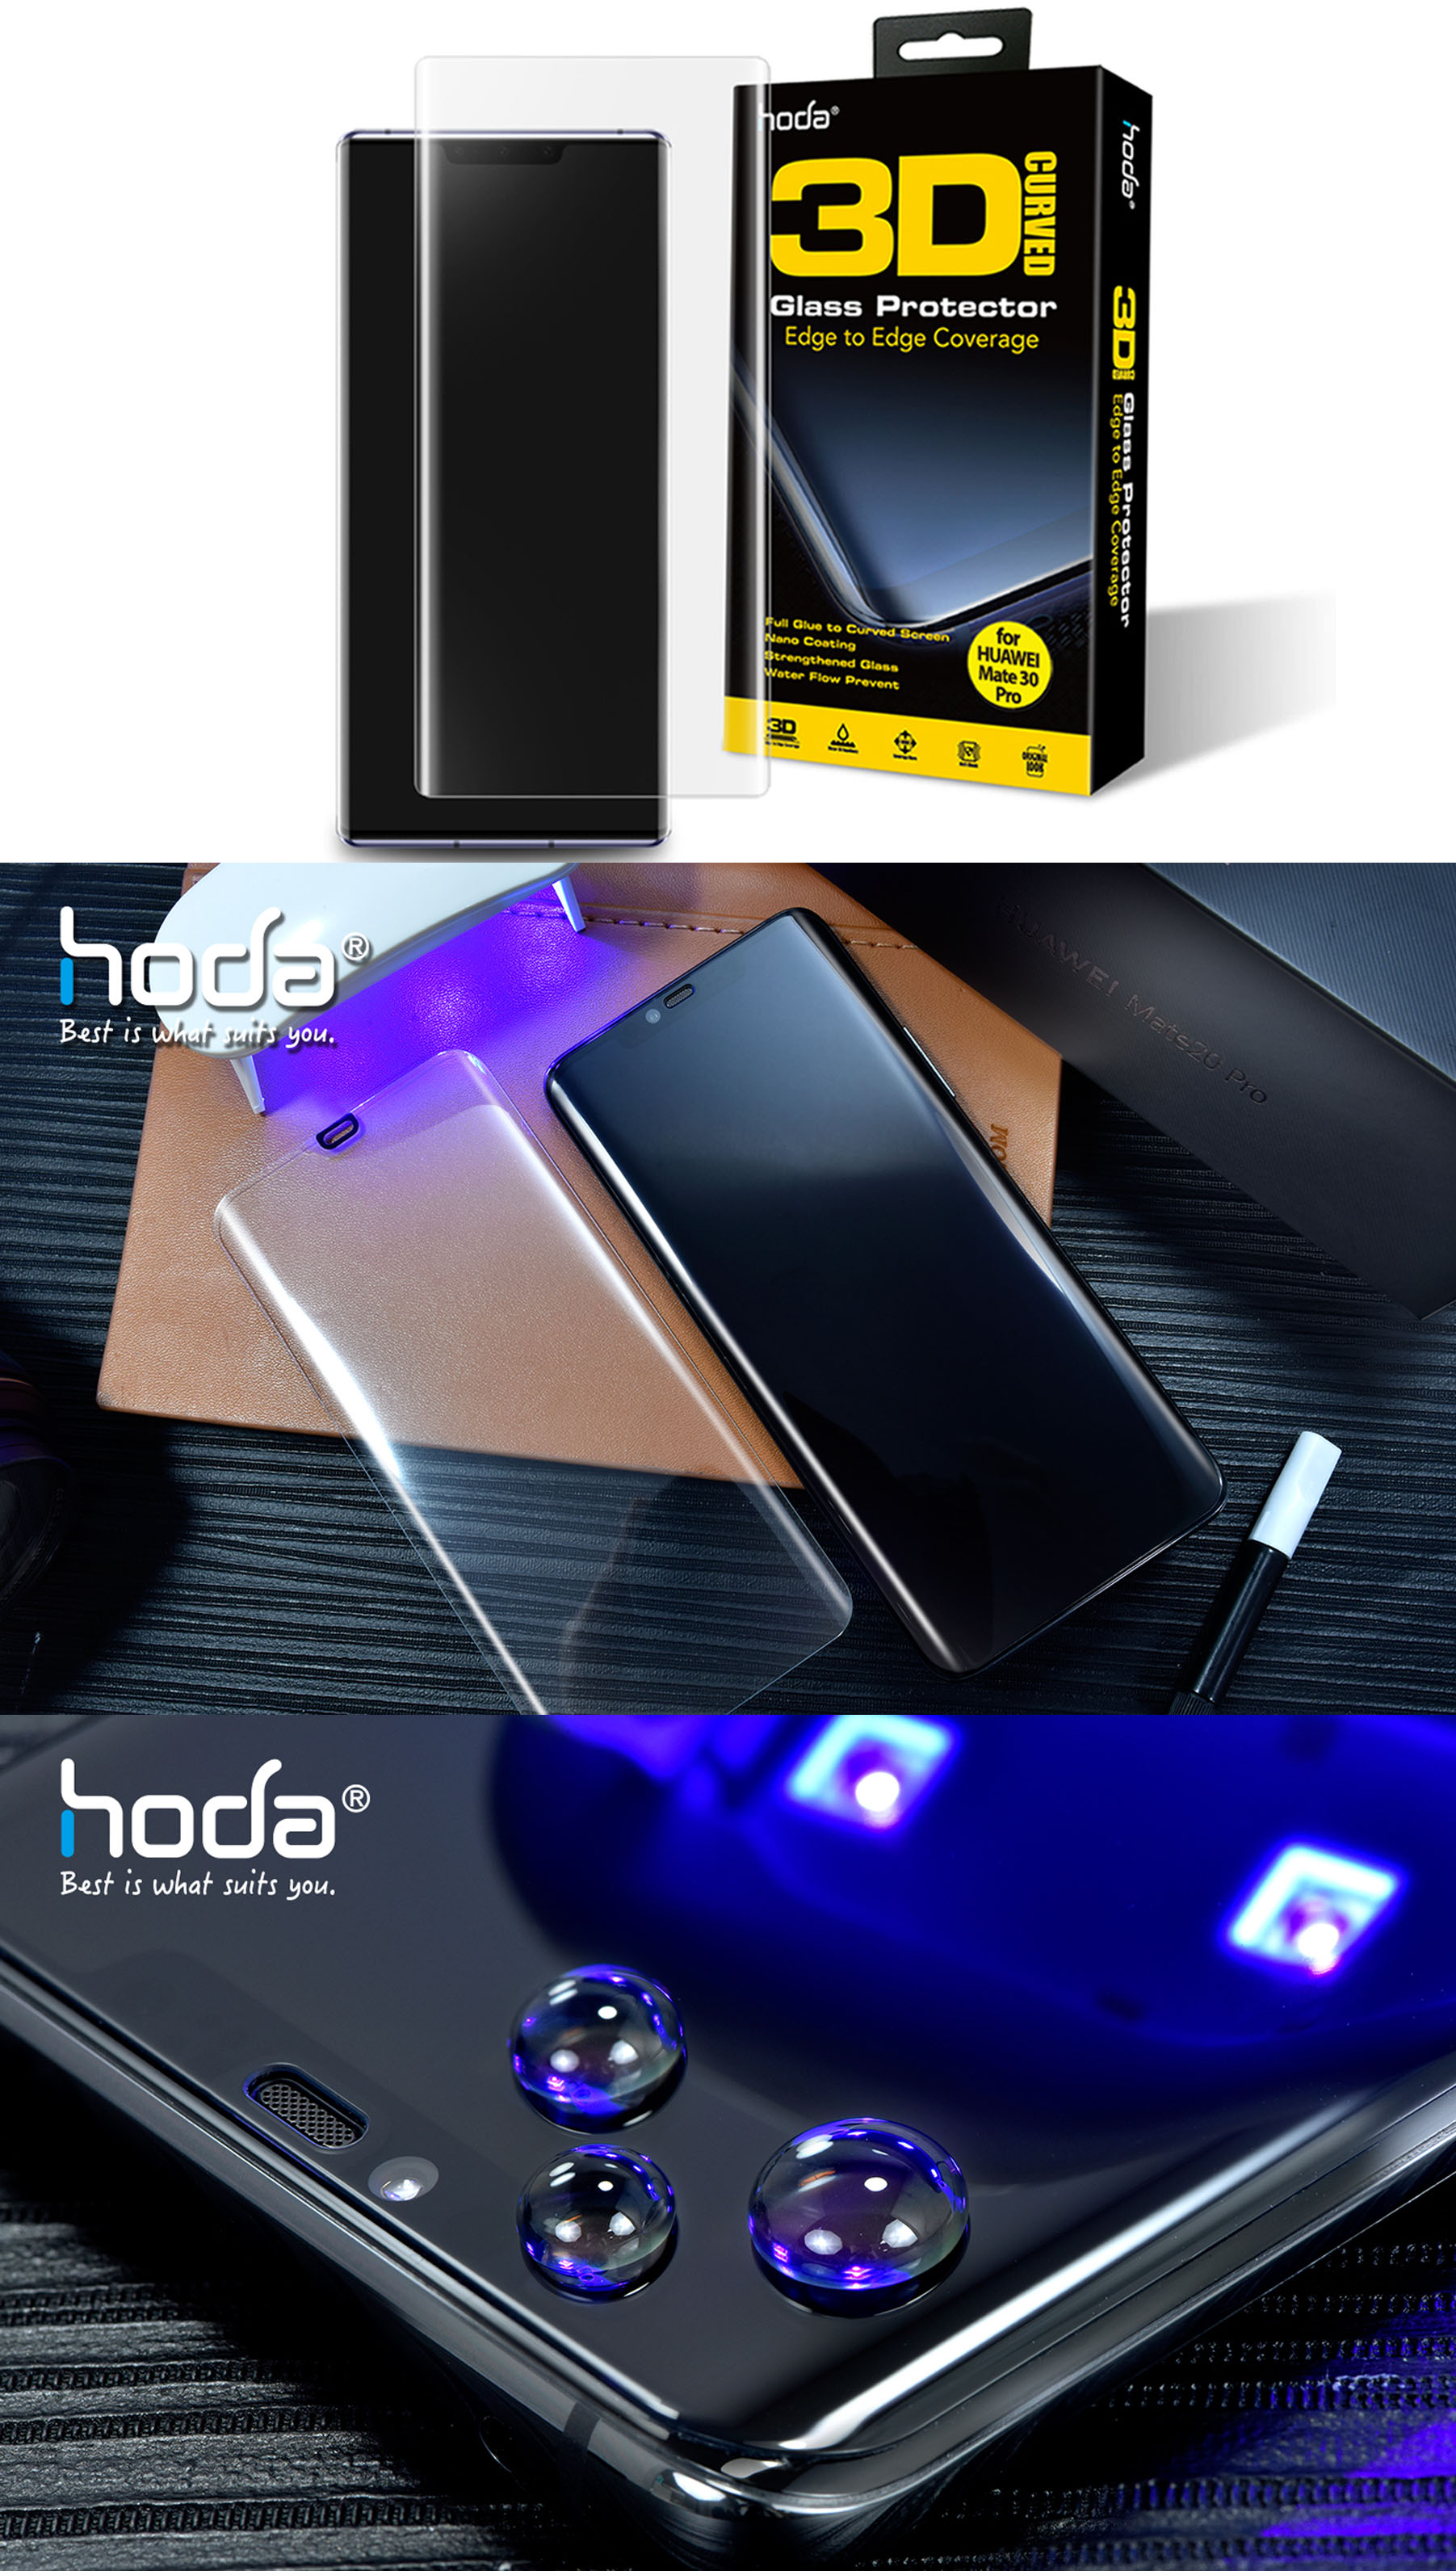 /hoda/4713381515068/1-des-fx-hoda-tempered-glass-huawei-mate-30-pro-3d-uv-screen-protector-screen-protector-clear-4713381515068-malaysia-authorised-retailer